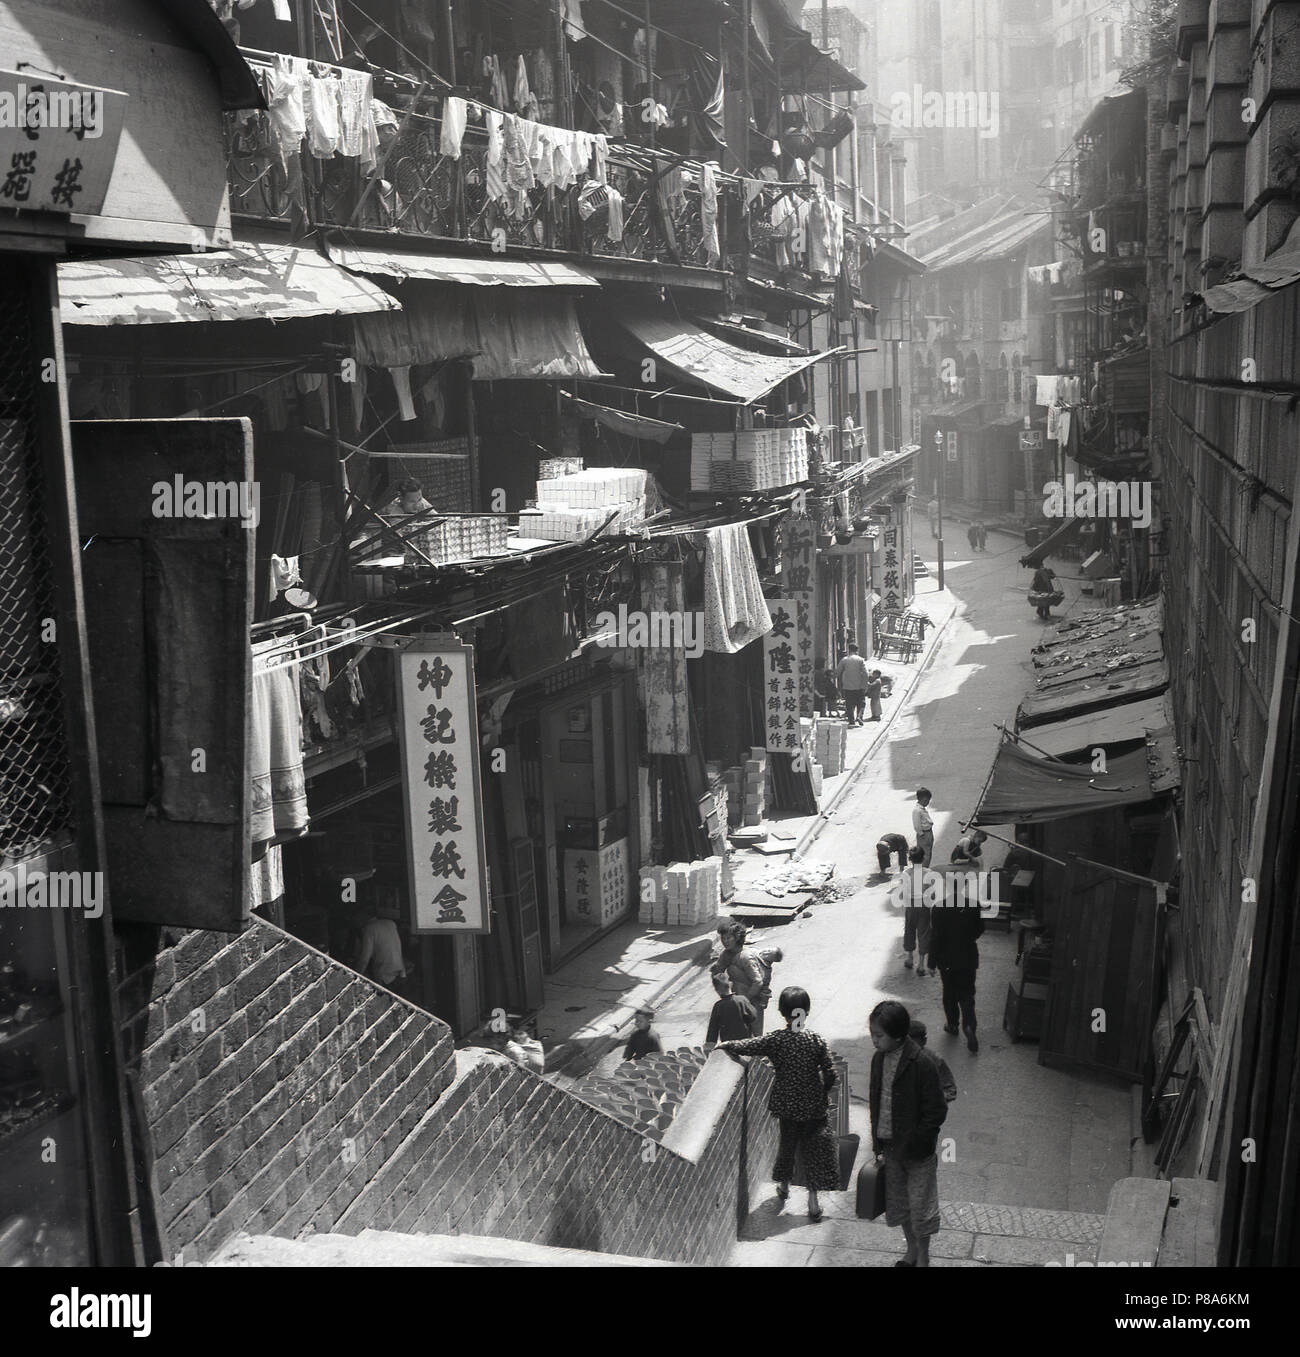 1950s, historical picture of an atmospheric narrow central Hong Kong  street showing the different levels of cramped living quarters above the shop units below, the original urban live-work concept now becomming popular in the west, abeit not on this scale and density. - Stock Image